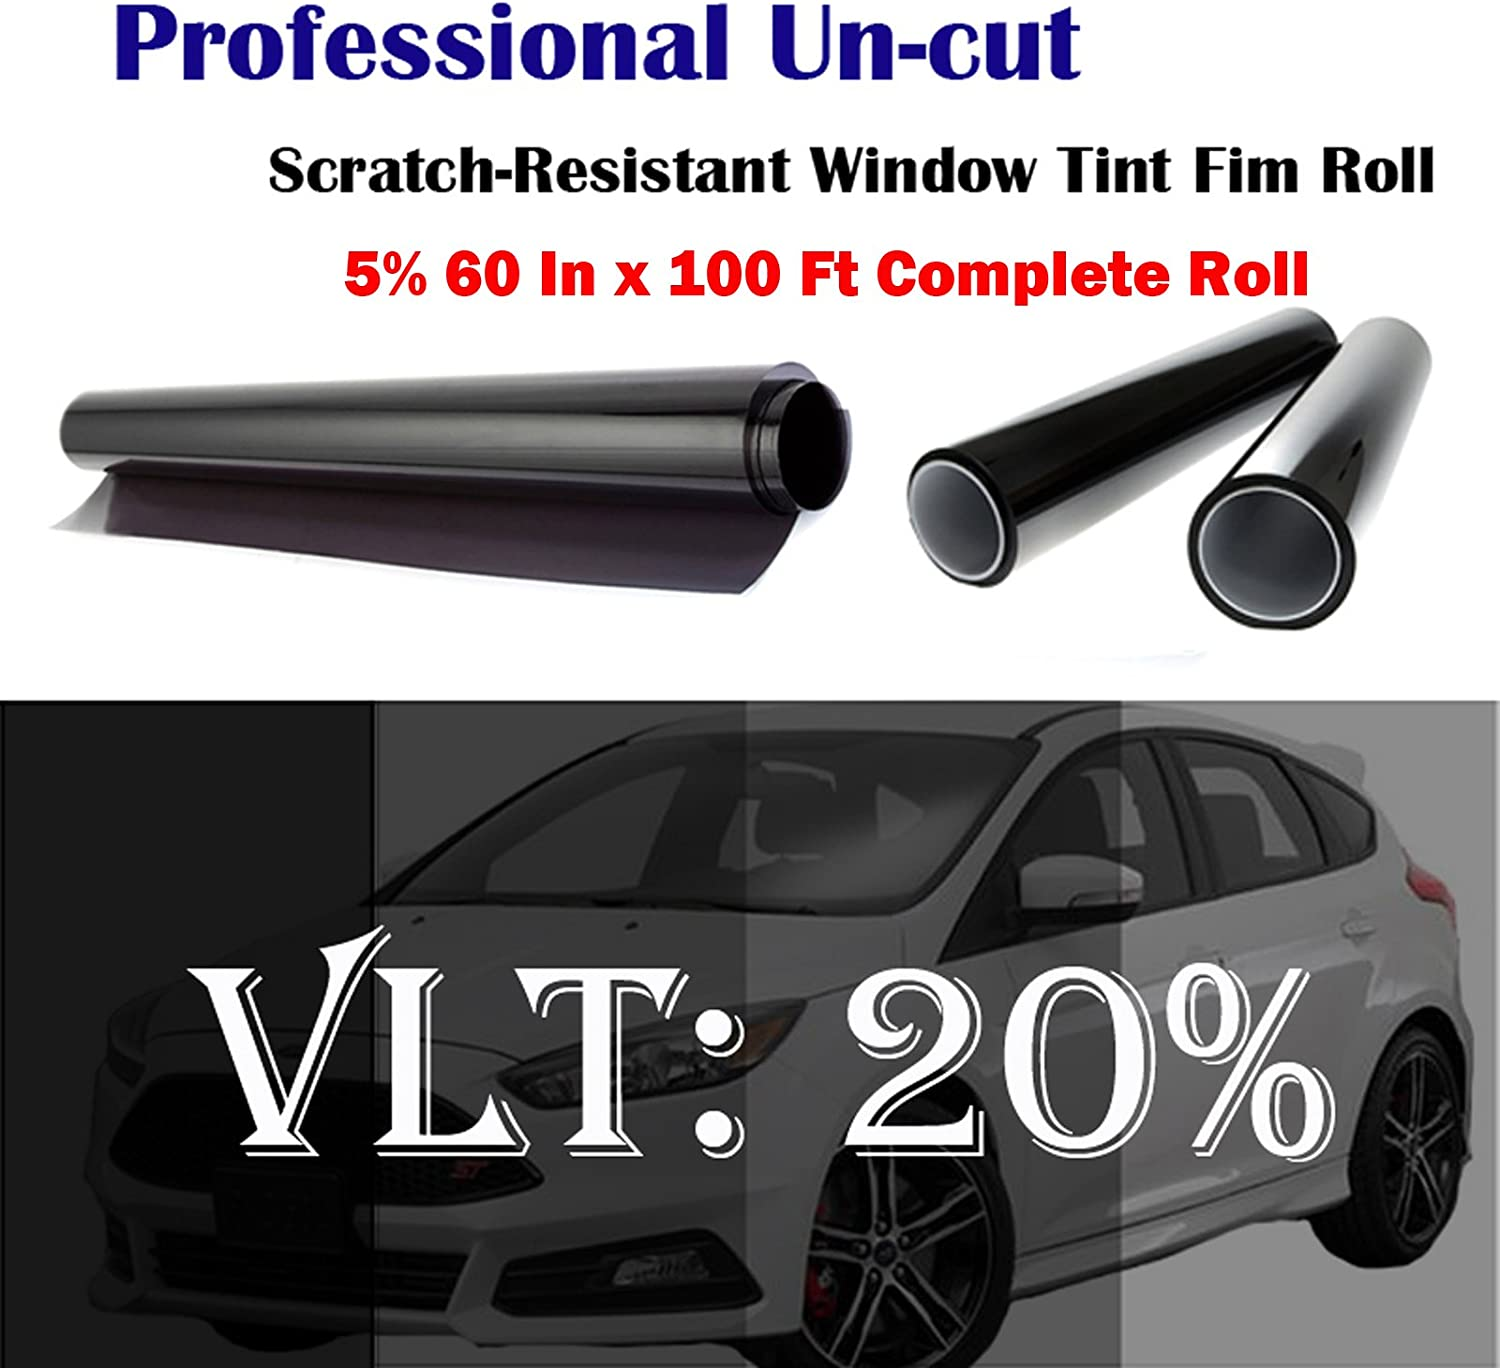 "Mkbrother Uncut Roll Window Tint Film 20% VLT 60"" in x 100' Ft Feet (60 X 1200 Inch) Car Home Office Glass"